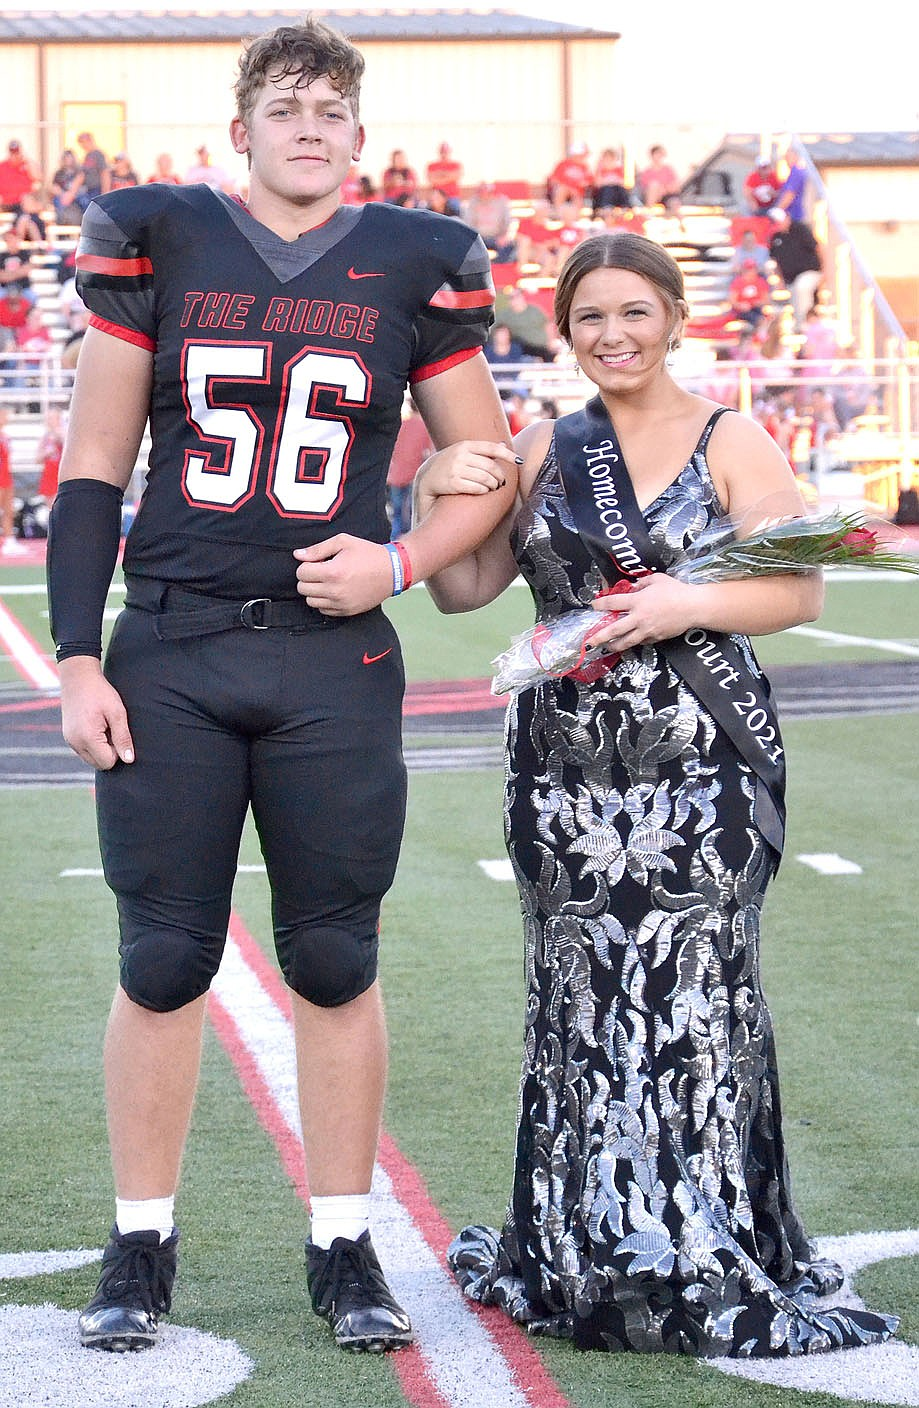 Homecoming maid Nalea Holliday, 17, daughter of Nash and Candice Holliday, was escorted by Braidon McCarley.